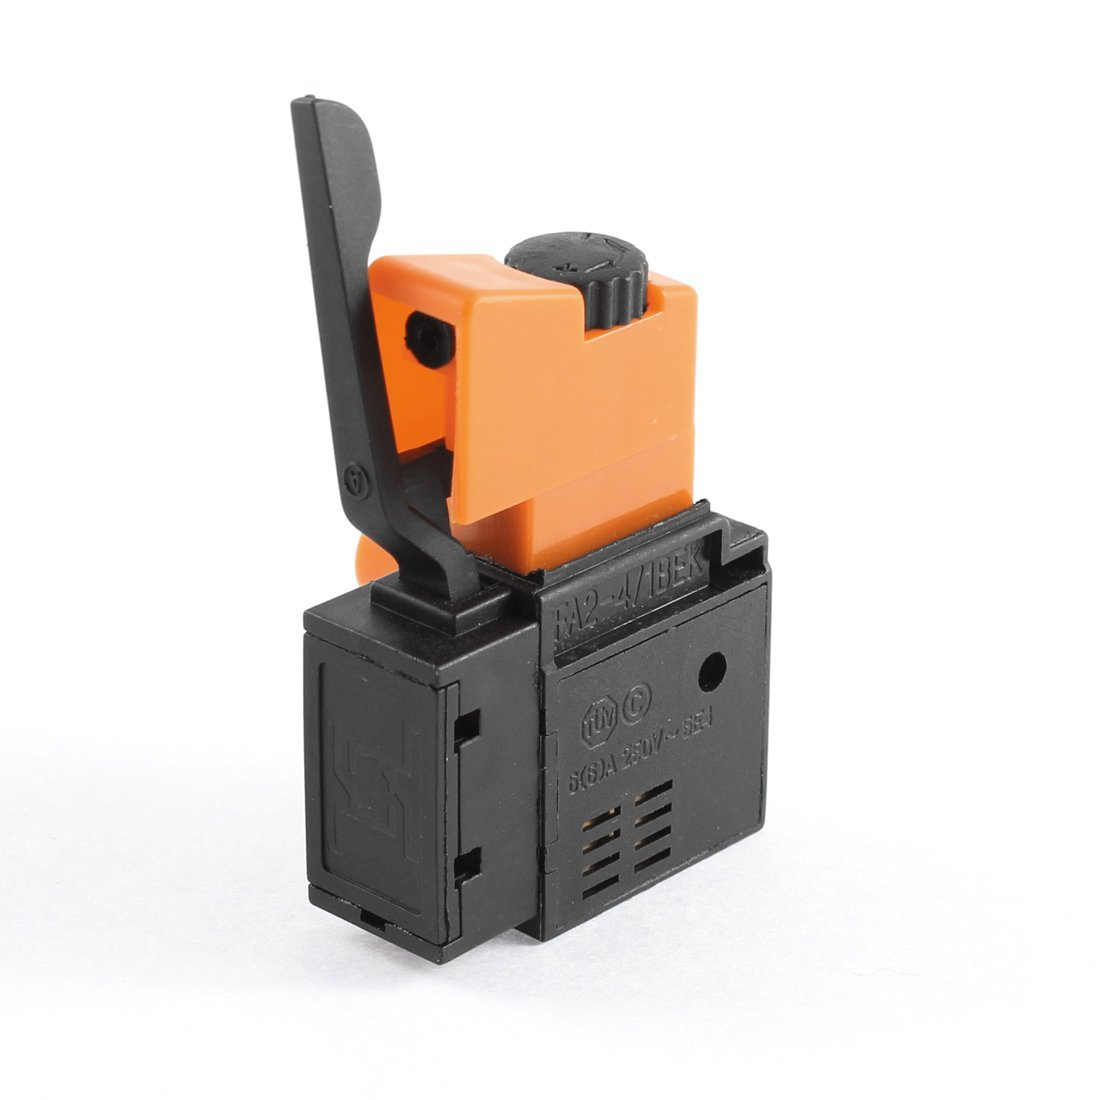 1PC AC 250V/4A <font><b>FA2</b></font>-<font><b>4</b></font>/<font><b>1BEK</b></font> Adjustable Speed Switch For Electric Drill Trigger Switches High Quality image